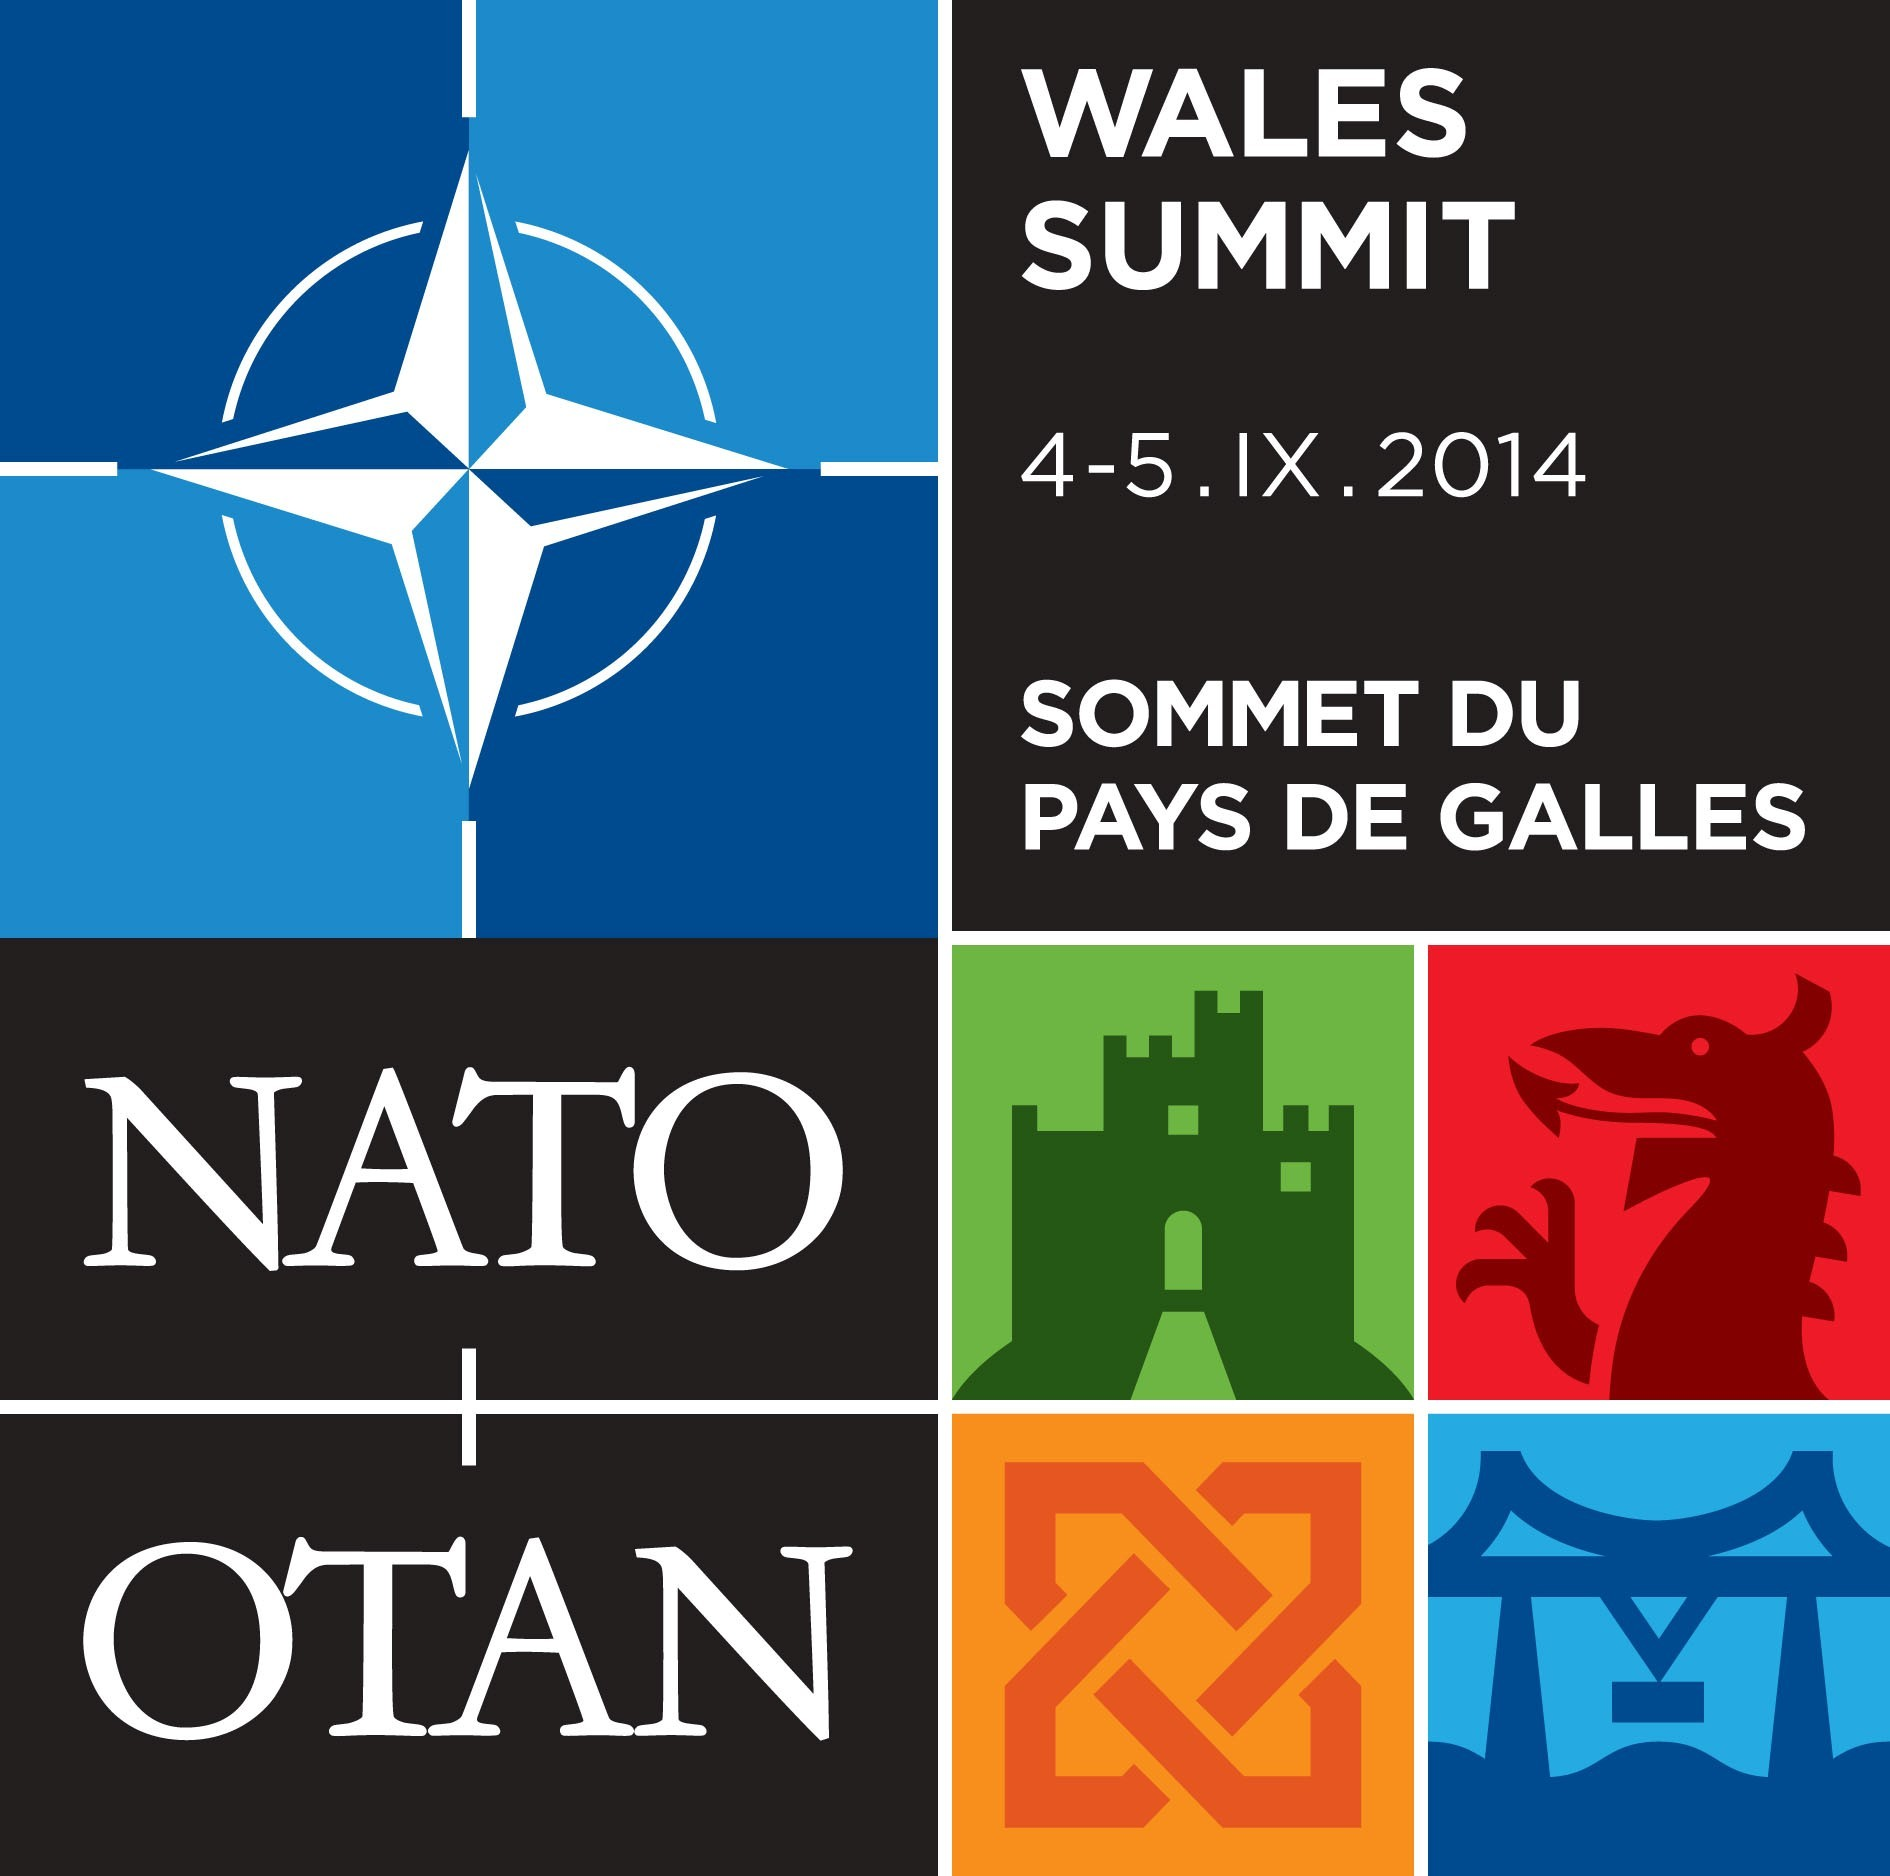 Newport snubbed with focus on Wales for Nato summit